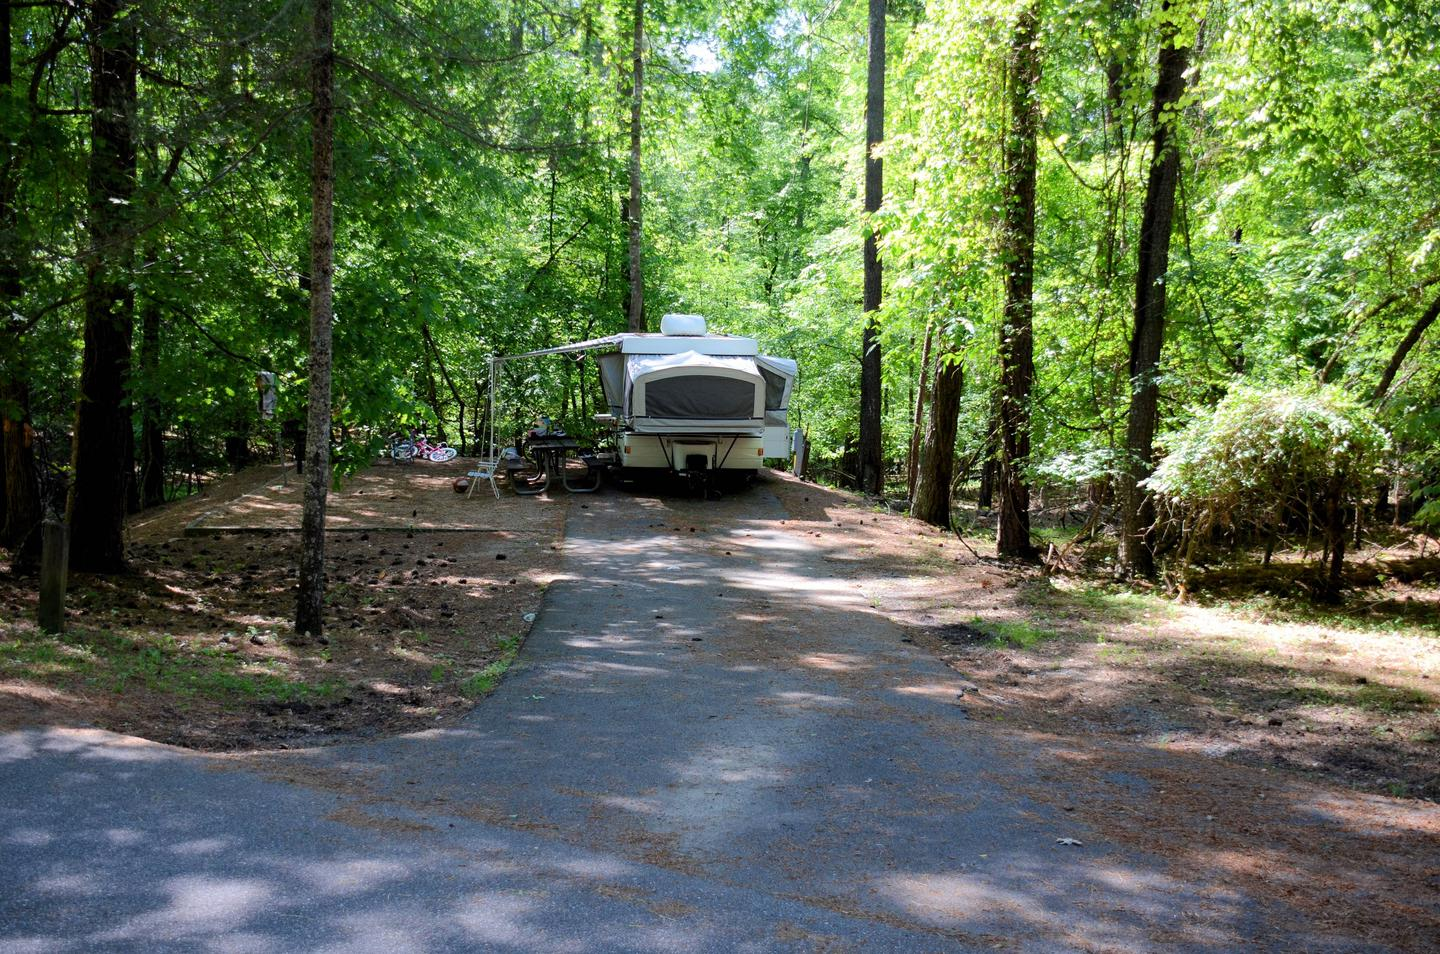 Driveway entrance/slope, awning-side clearance.McKinney Campground, campsite 58.